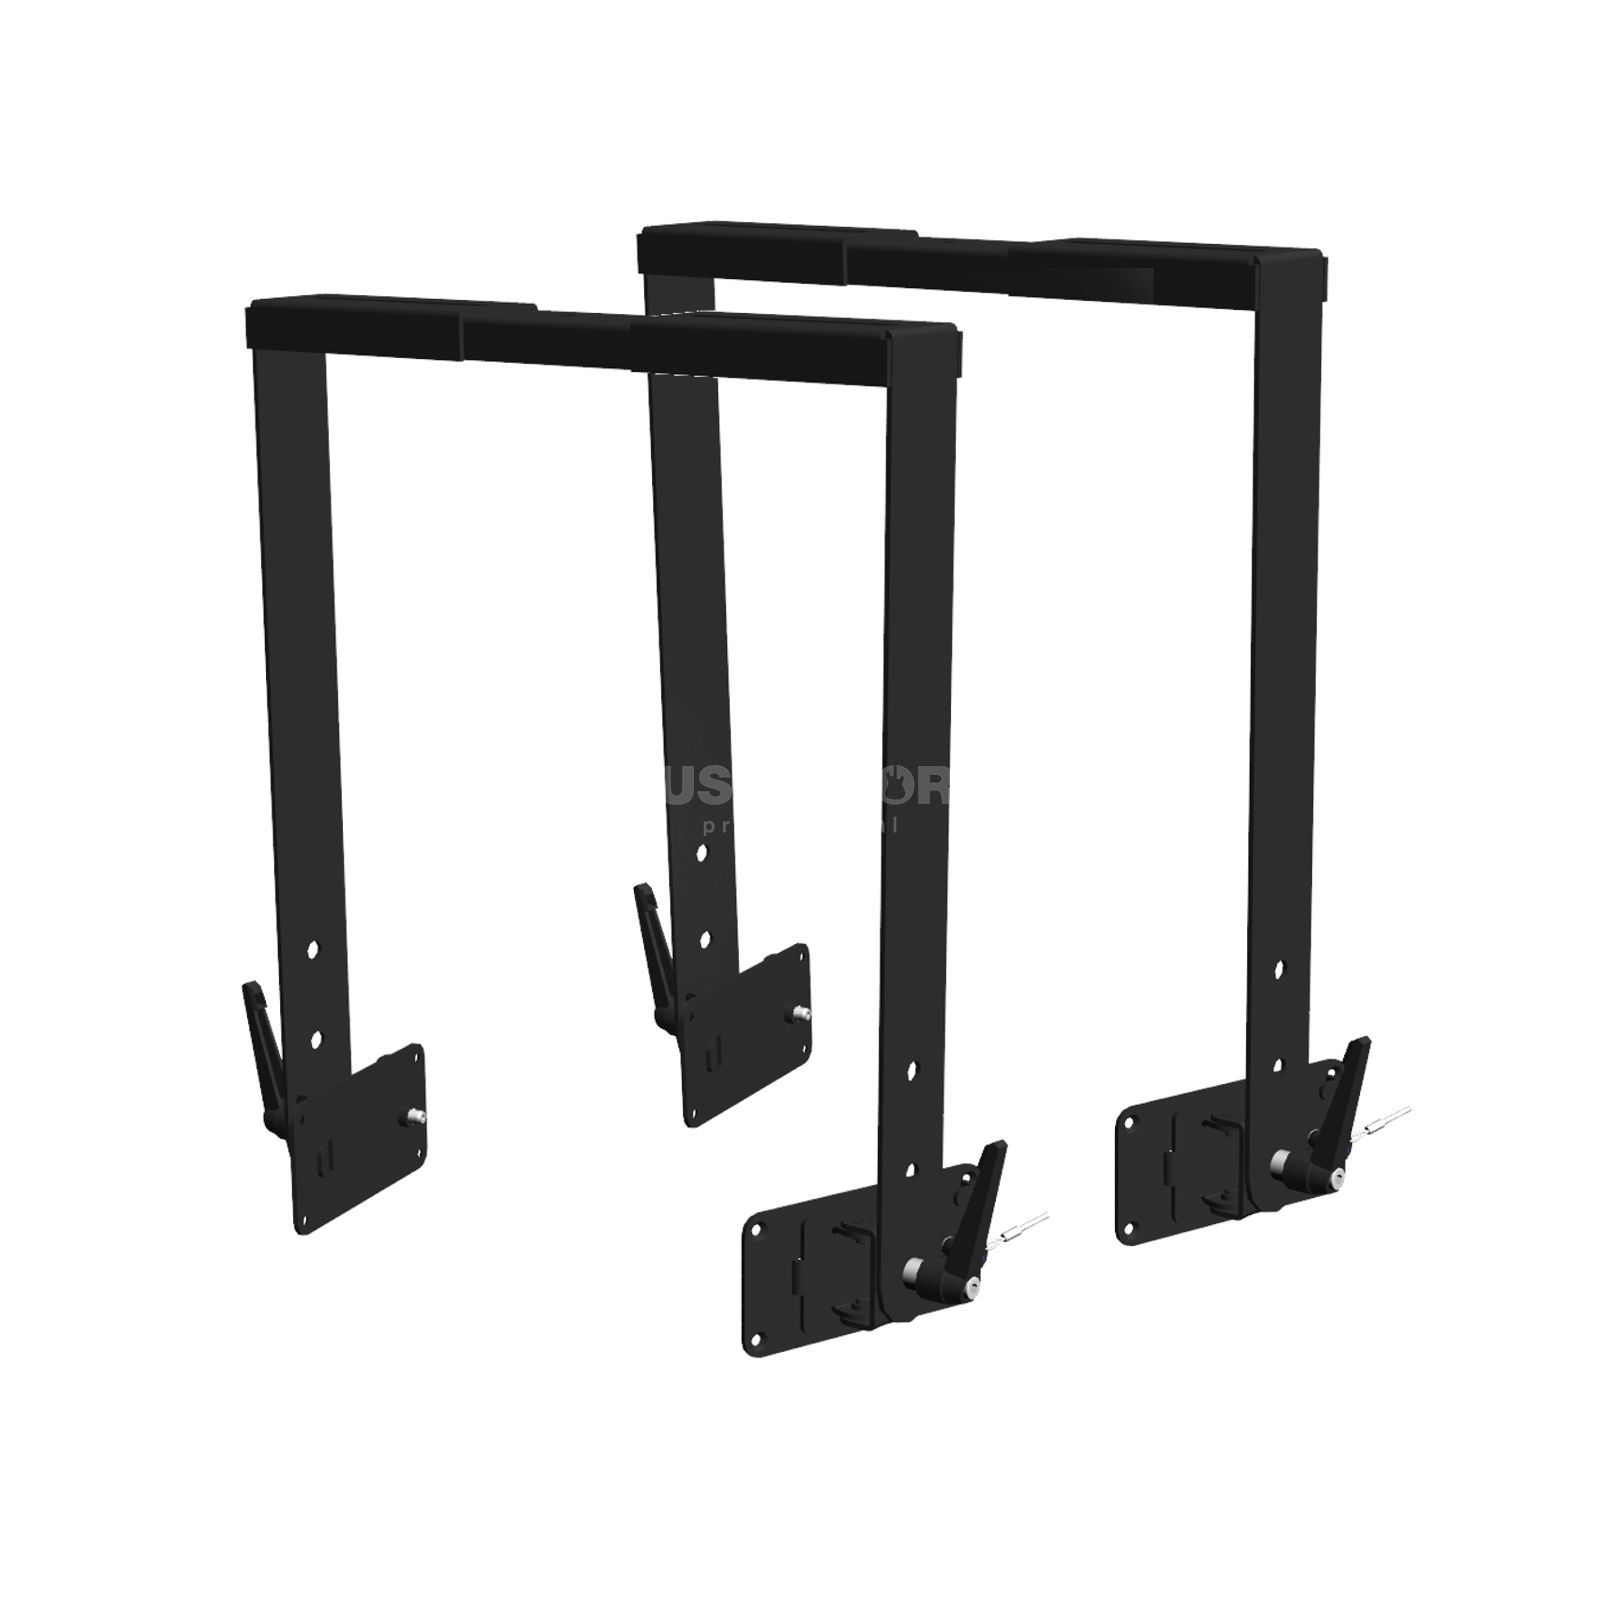 HK Audio TB-NQ Tilter Bracket Product Image